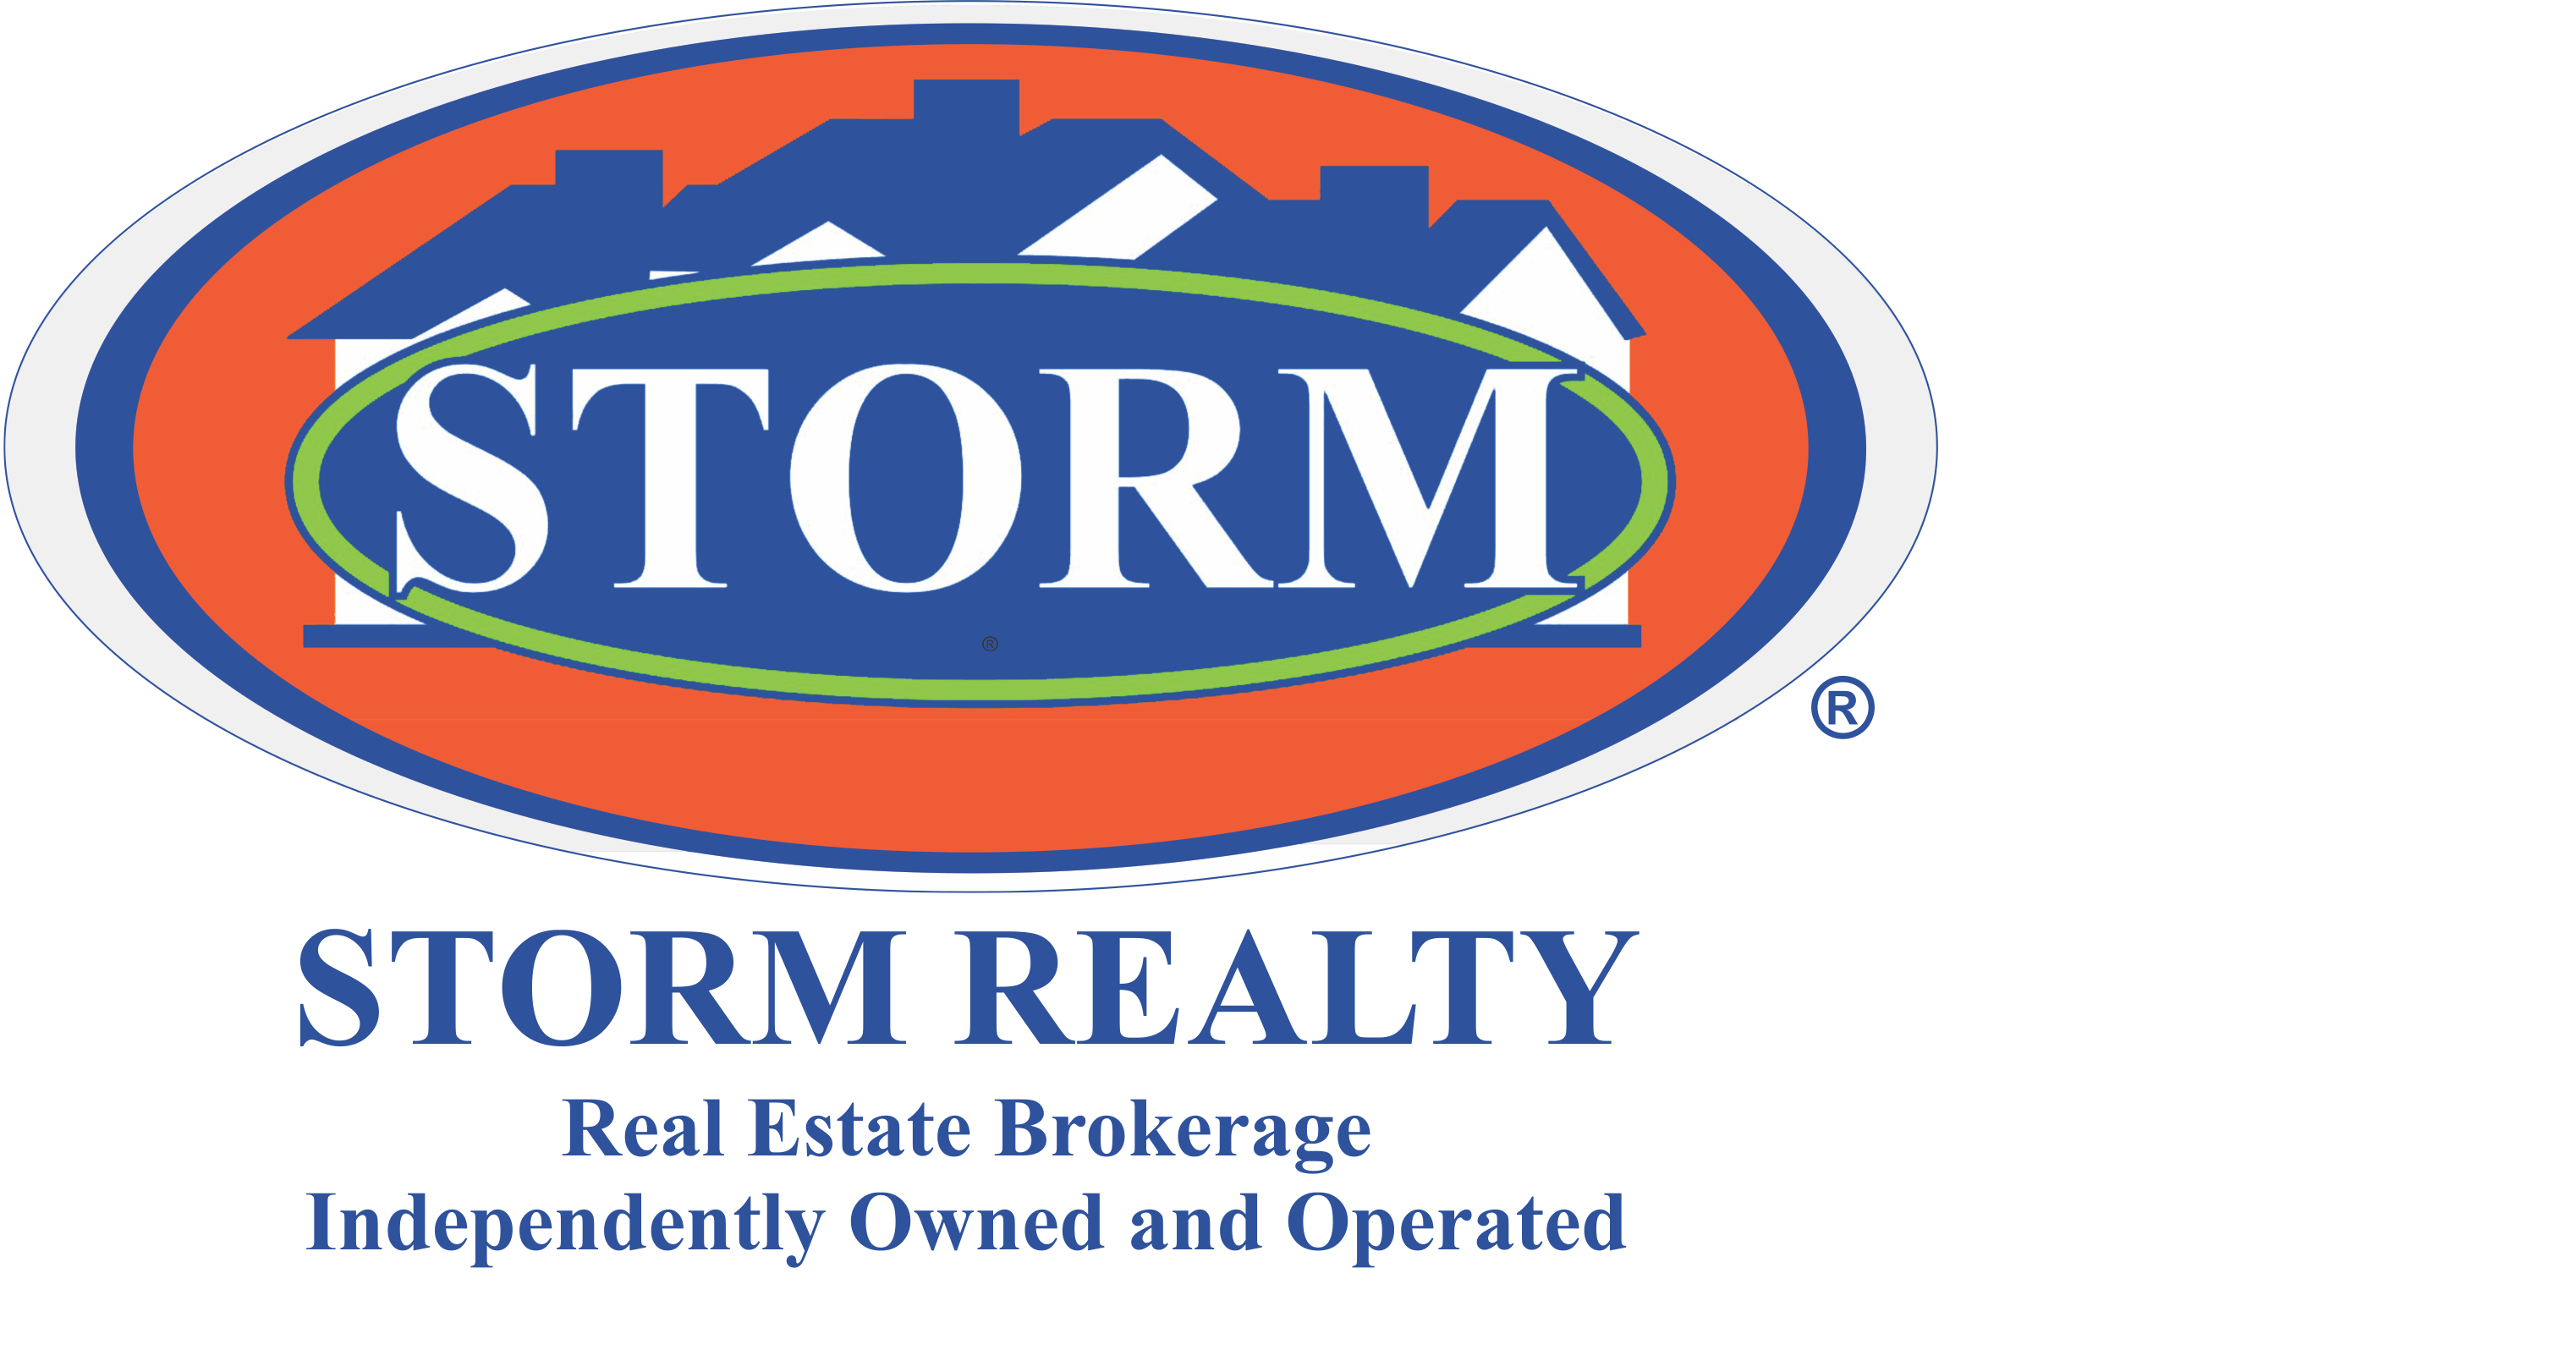 STORM REALTY Brokerage*